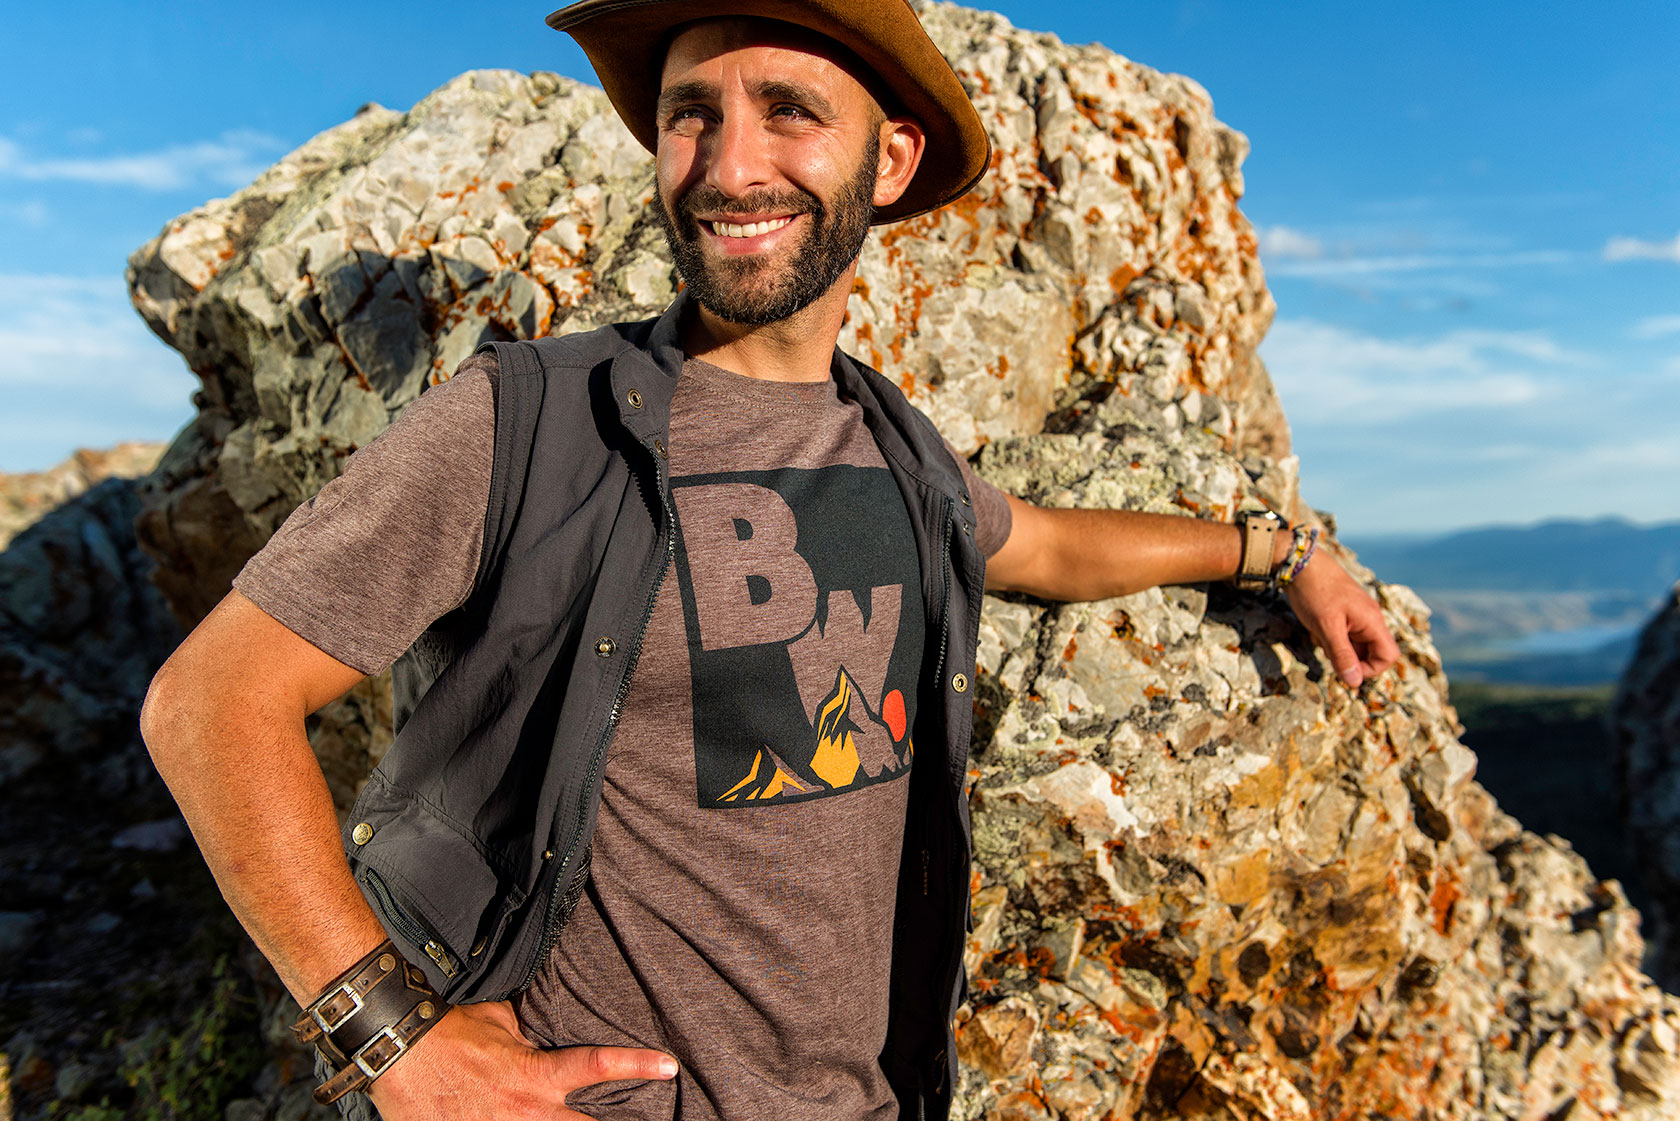 austin-trigg-brave-wilderness-utah-coyote-peterson-rock-background-model.jpg